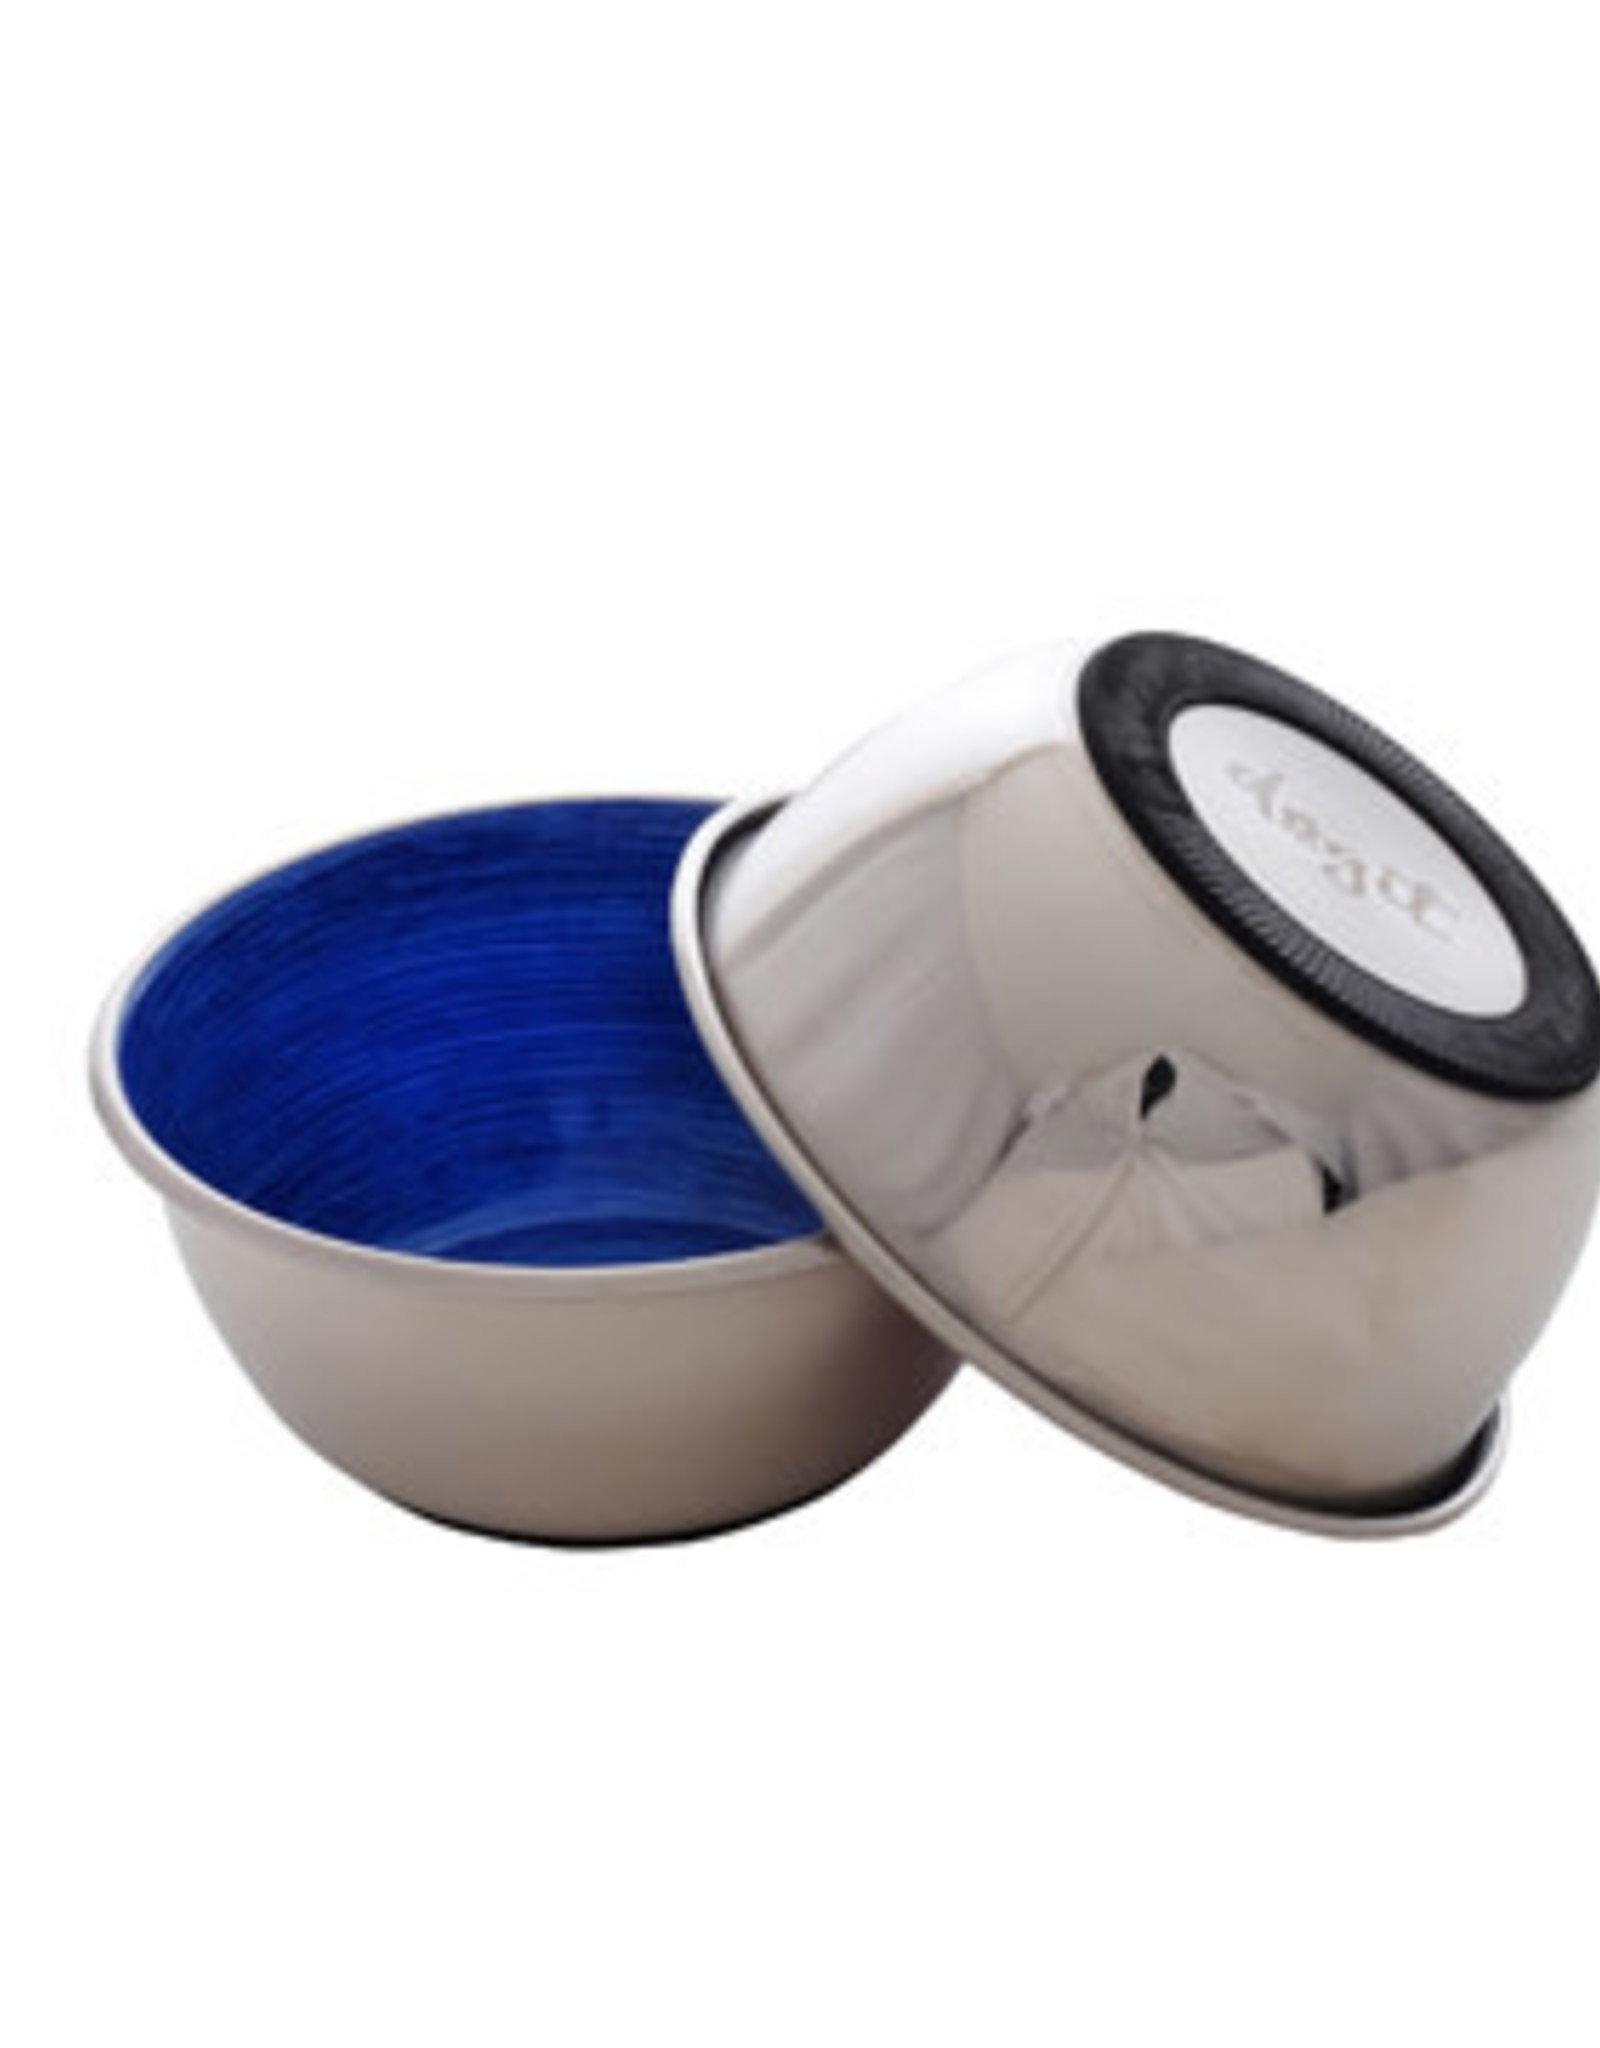 DogIt Dogit Stainless Steel Non-Skid Dog Bowl - Blue Swirl - 950 ml (32 fl.oz.)